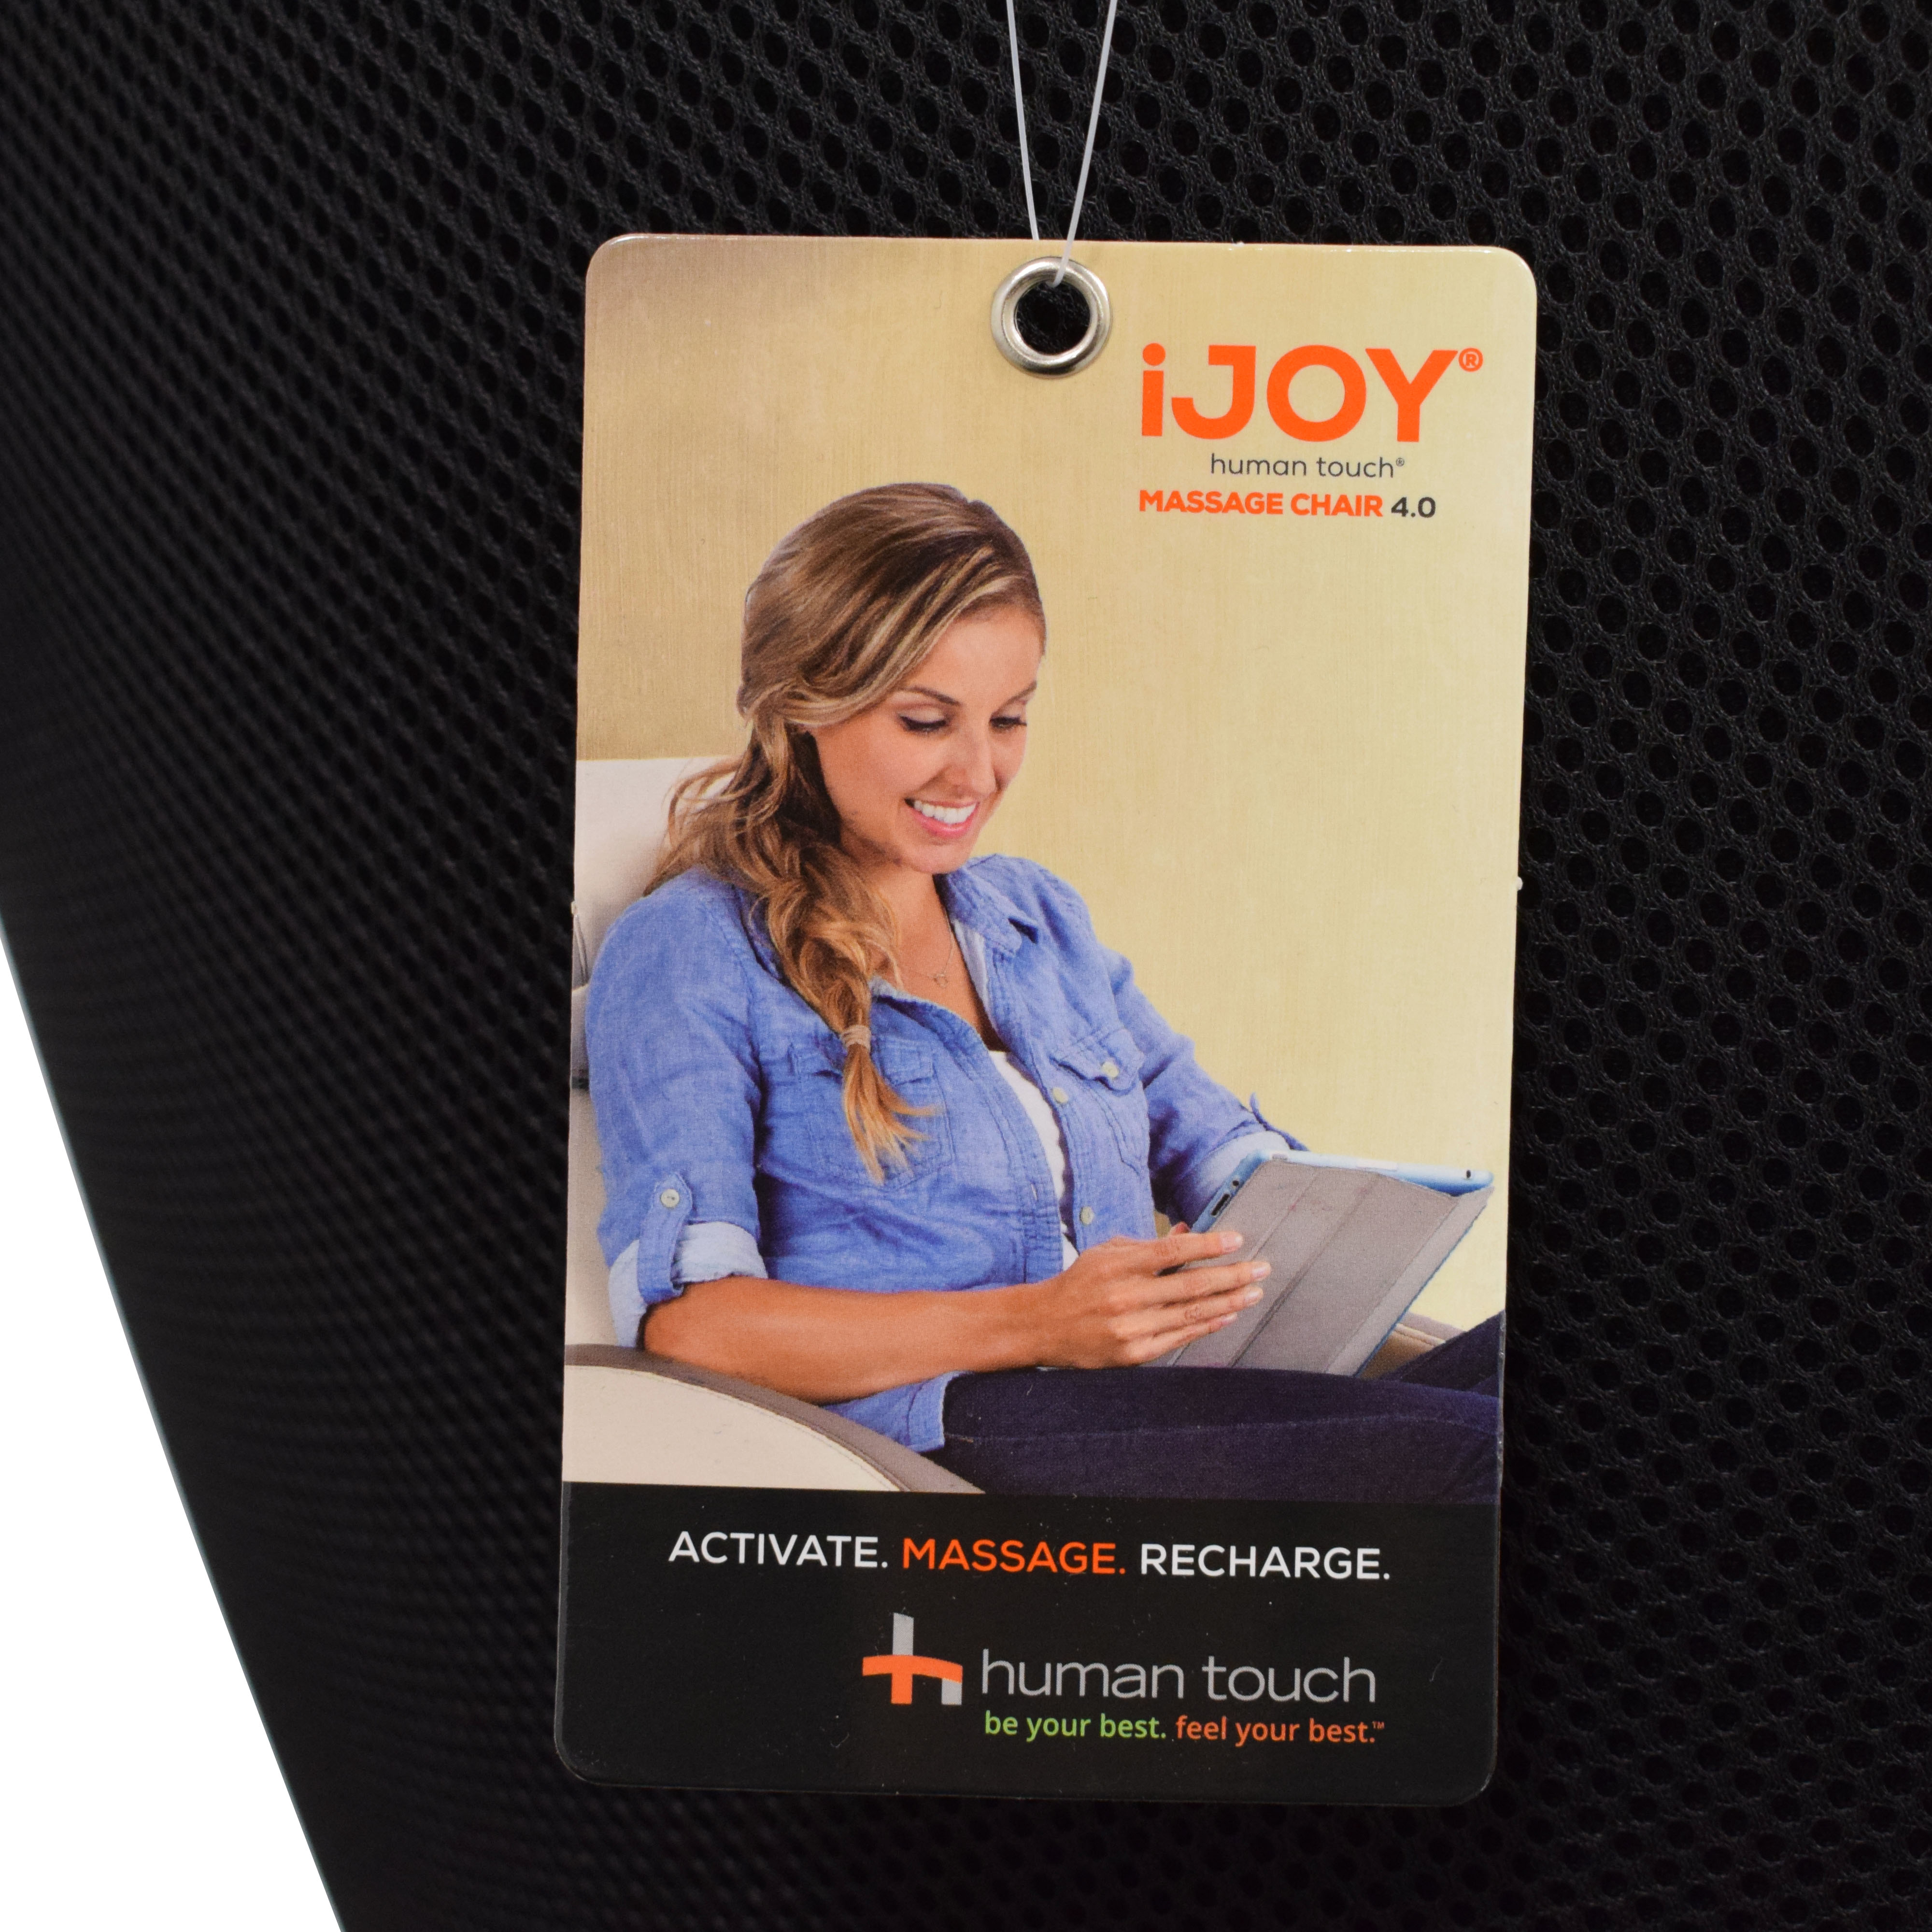 Human Touch Human Touch iJOY Massage Chair 4.0 for sale